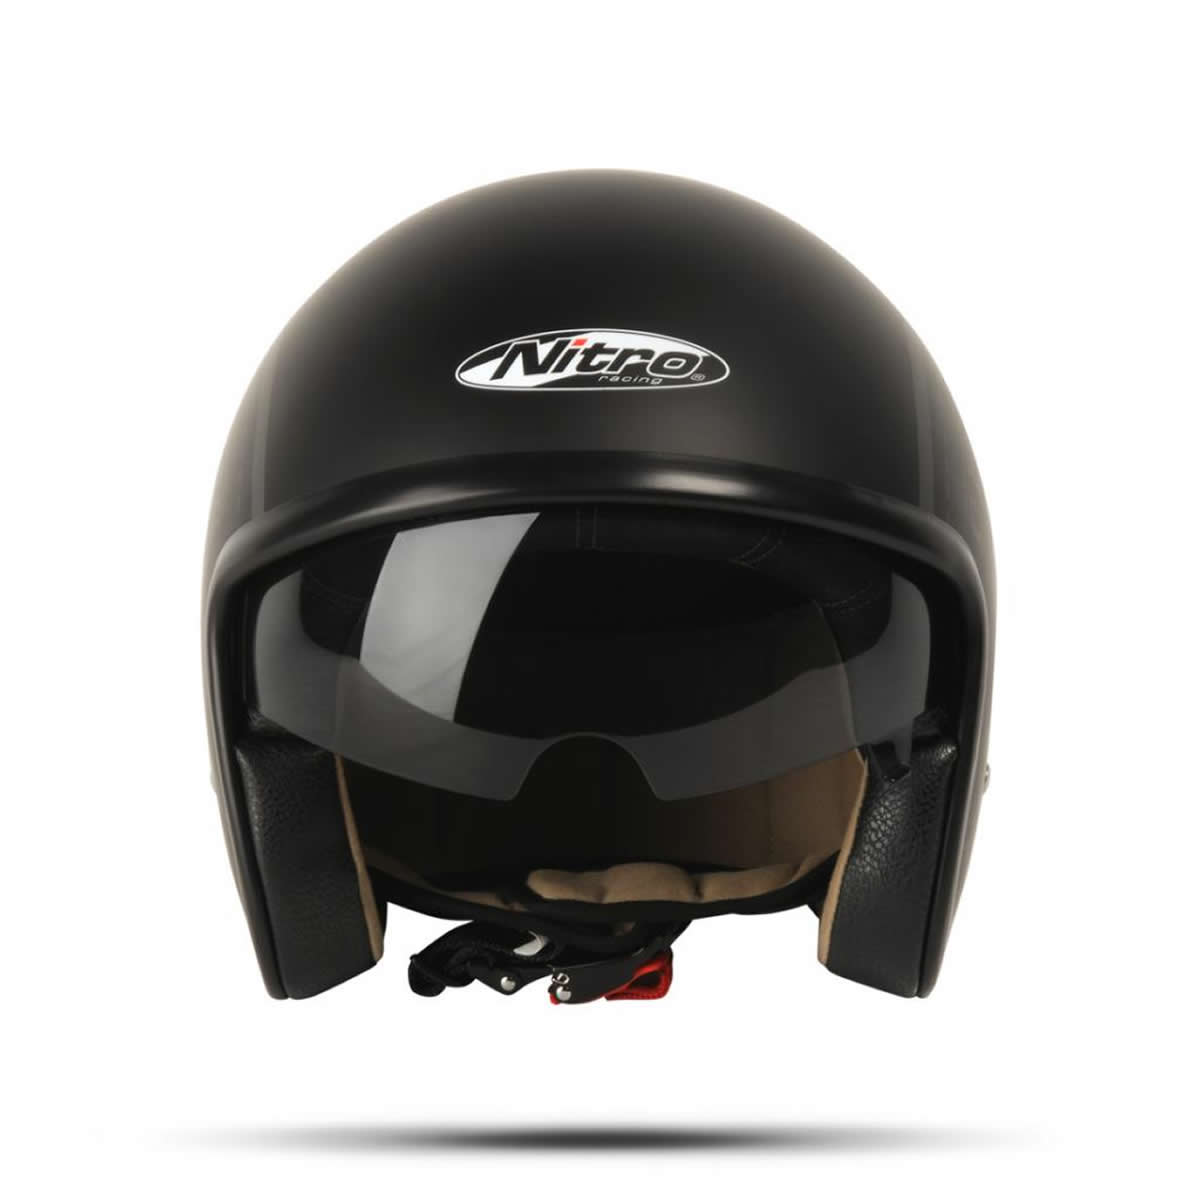 NITRO X DECAL CLASSIC OPEN FACE SUN SHIELD SCOOTER MOD BIKE - Motorcycle helmet face shield decals